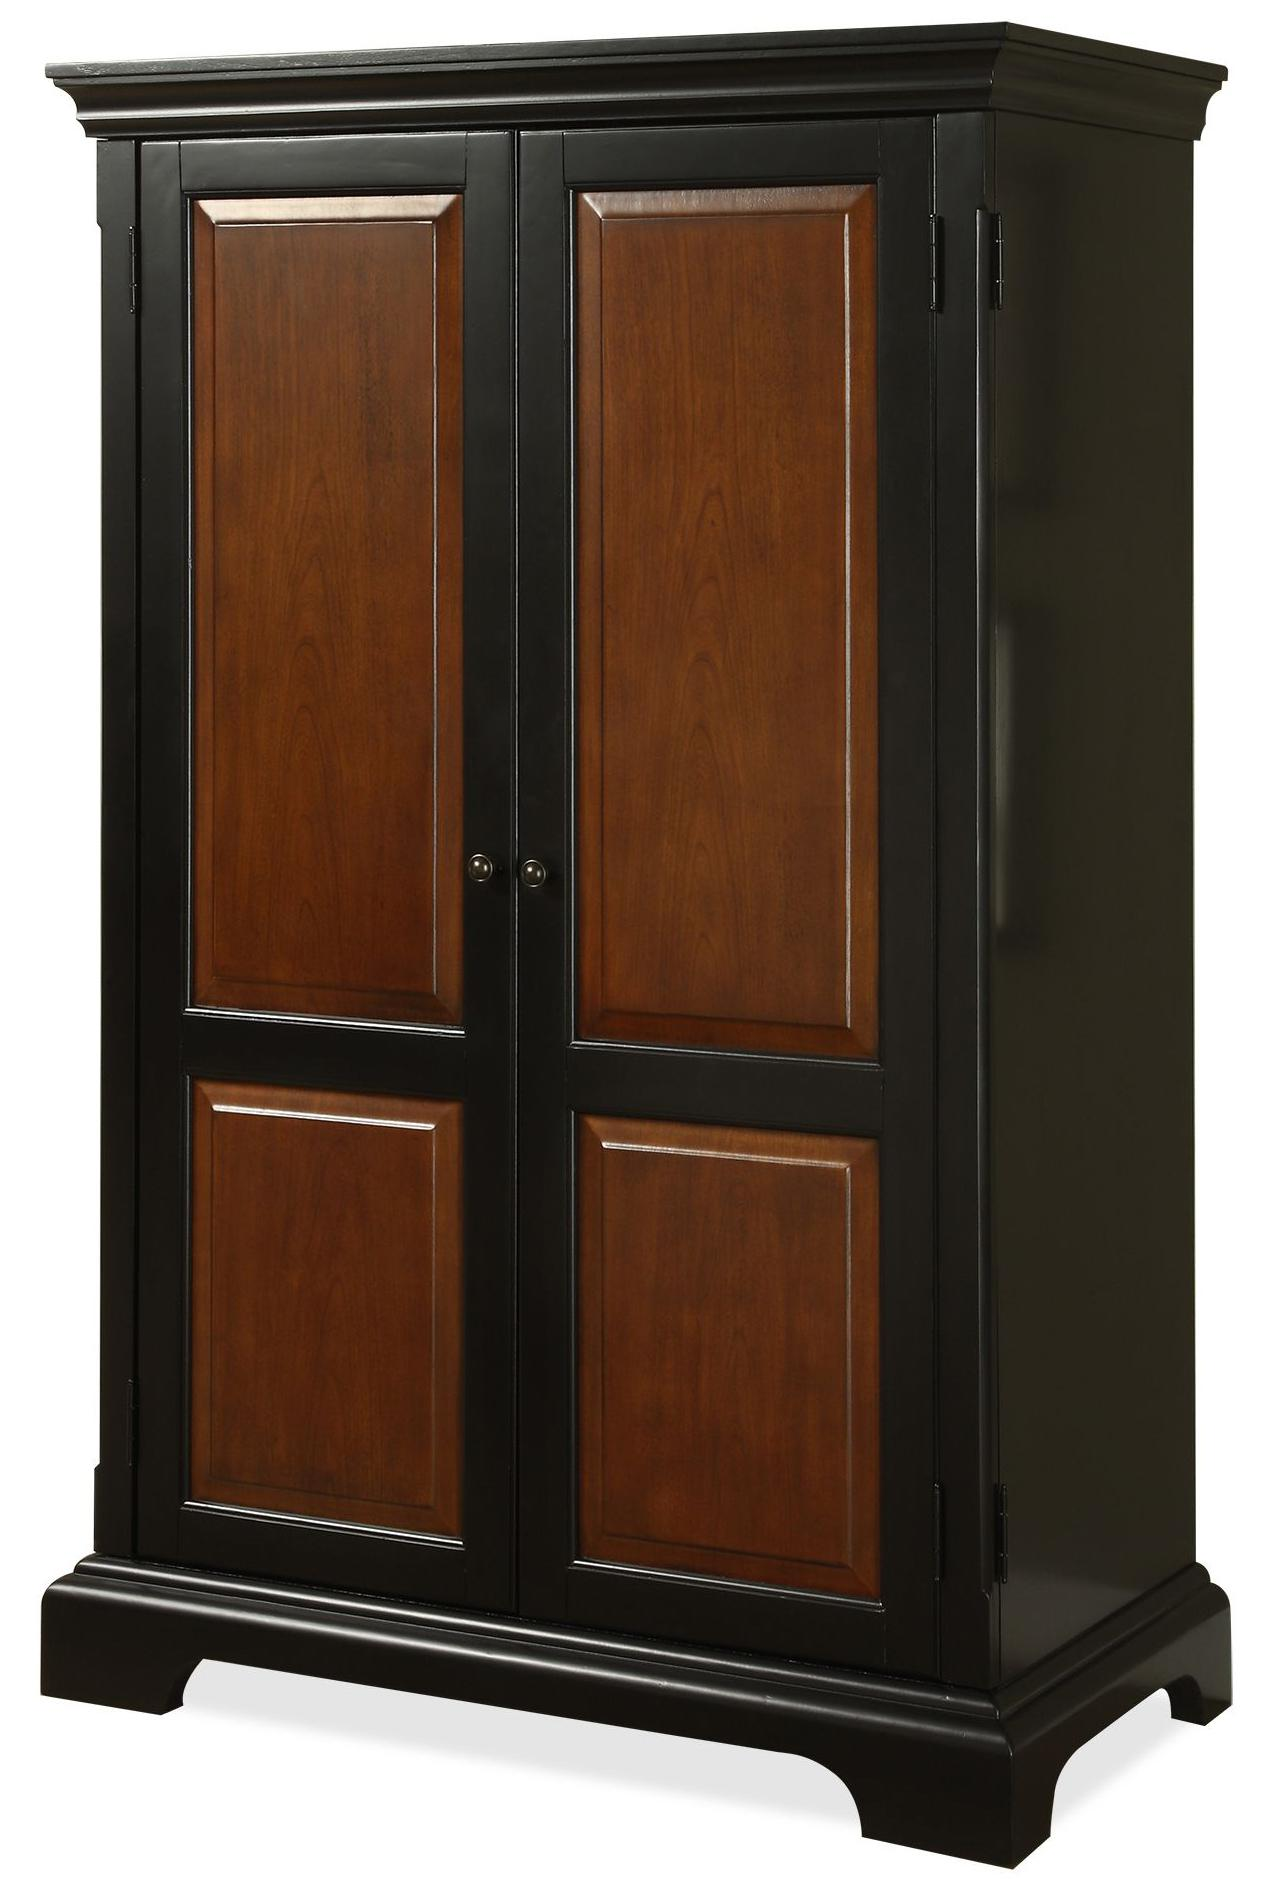 What Is An Armoire Furniture | Wardrobe Armoire Furniture | Armoire Furniture